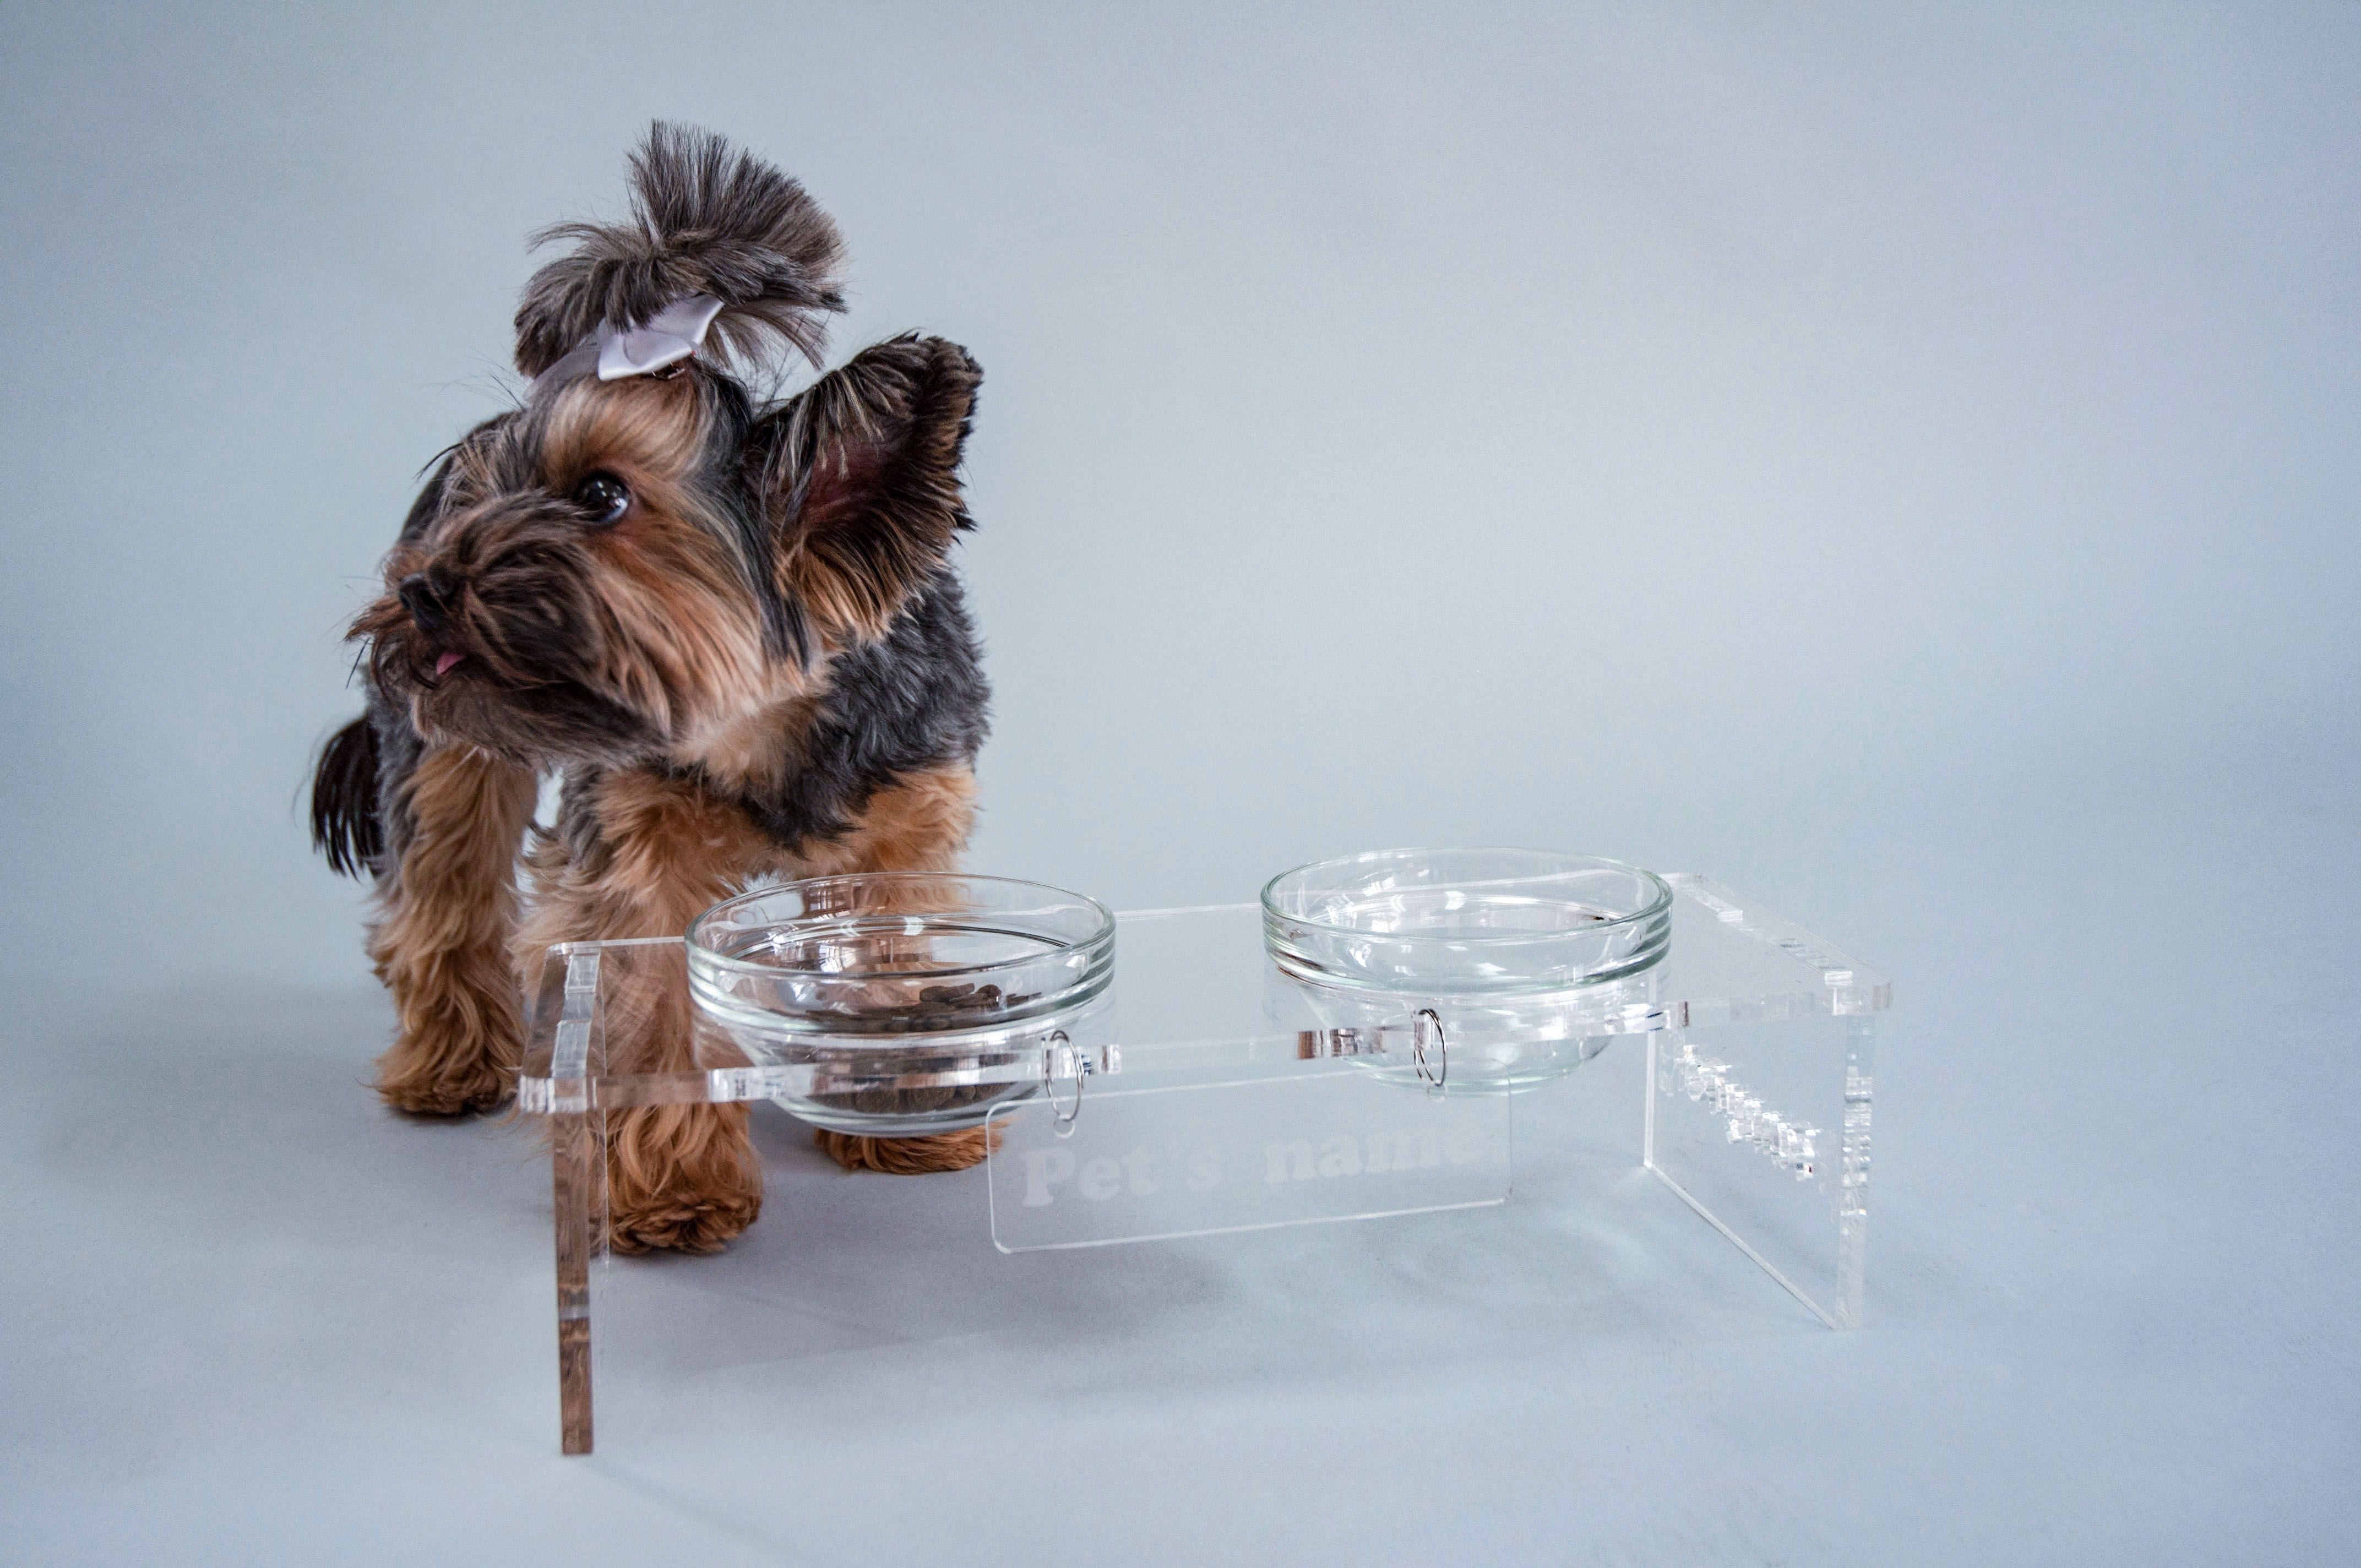 Pets Care - #petfeedingstation #yorkie #FunnyPet #catbowls #dogbows ...